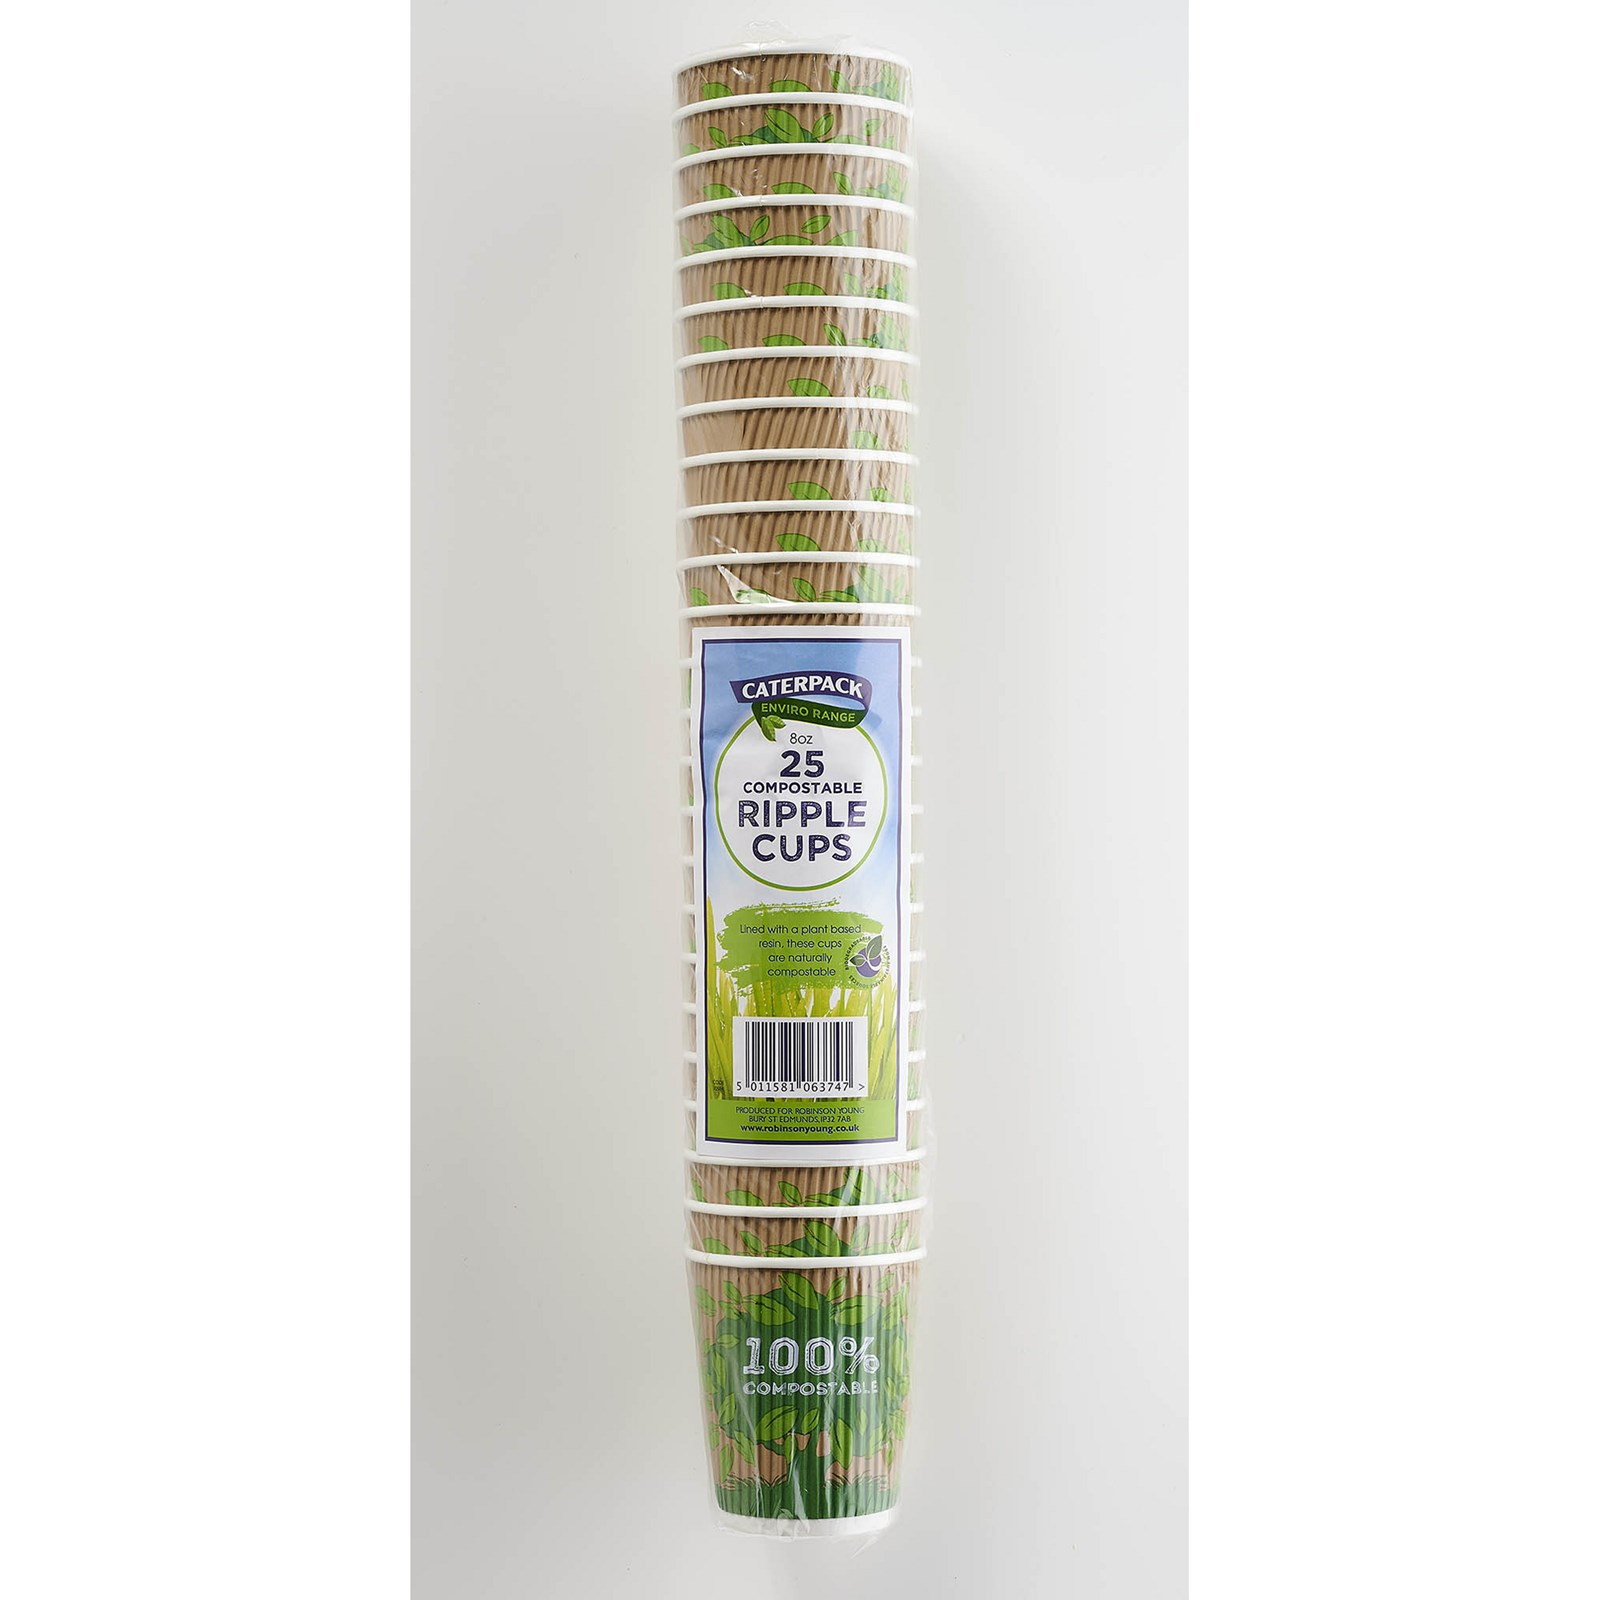 Caterpack 8oz Ripple Cups